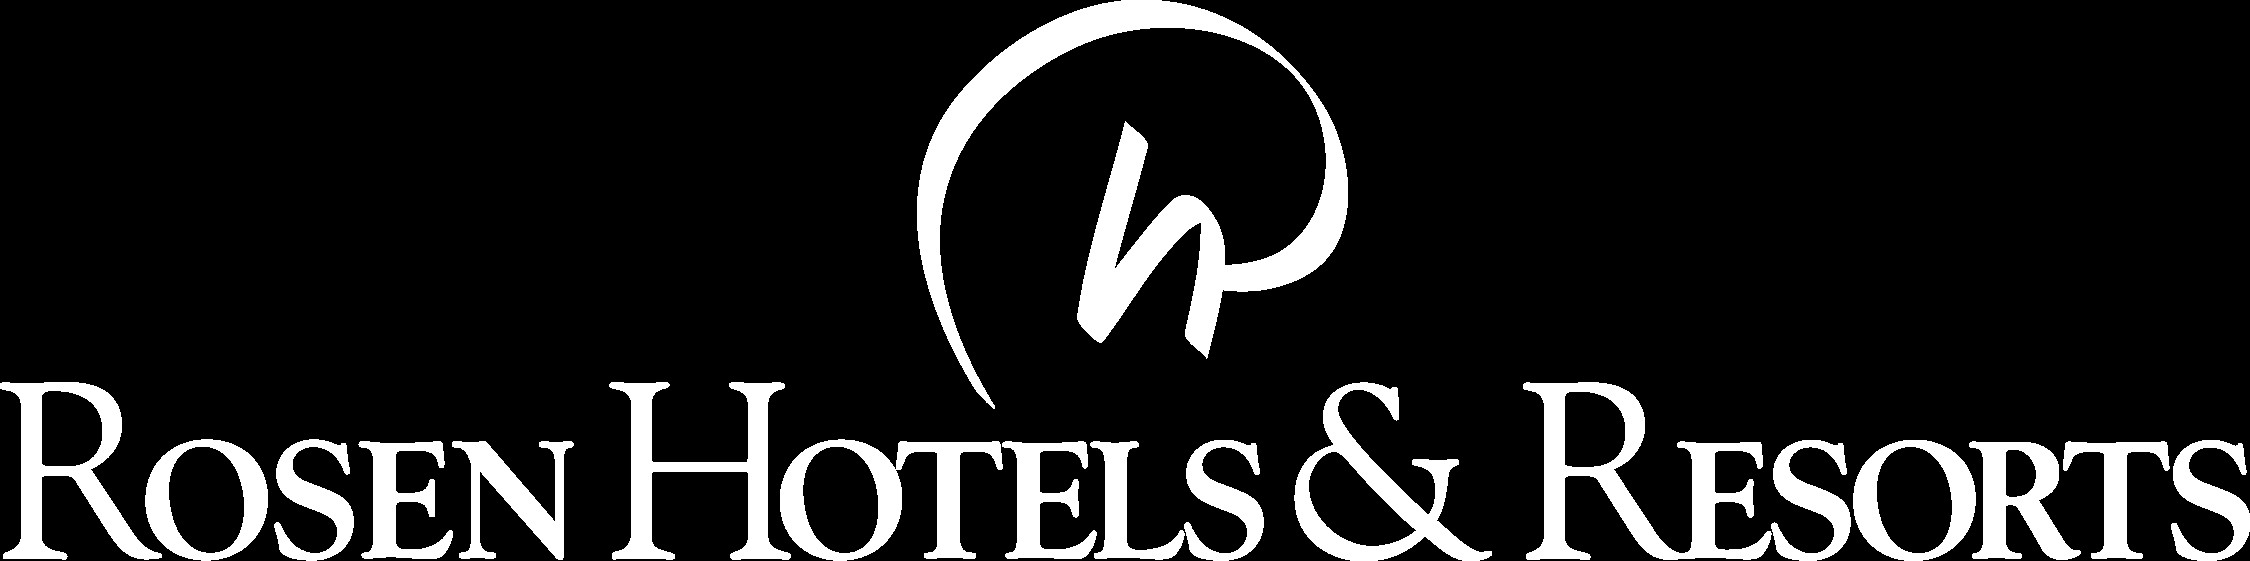 Rosen Hotels & Resorts Reverse Logo